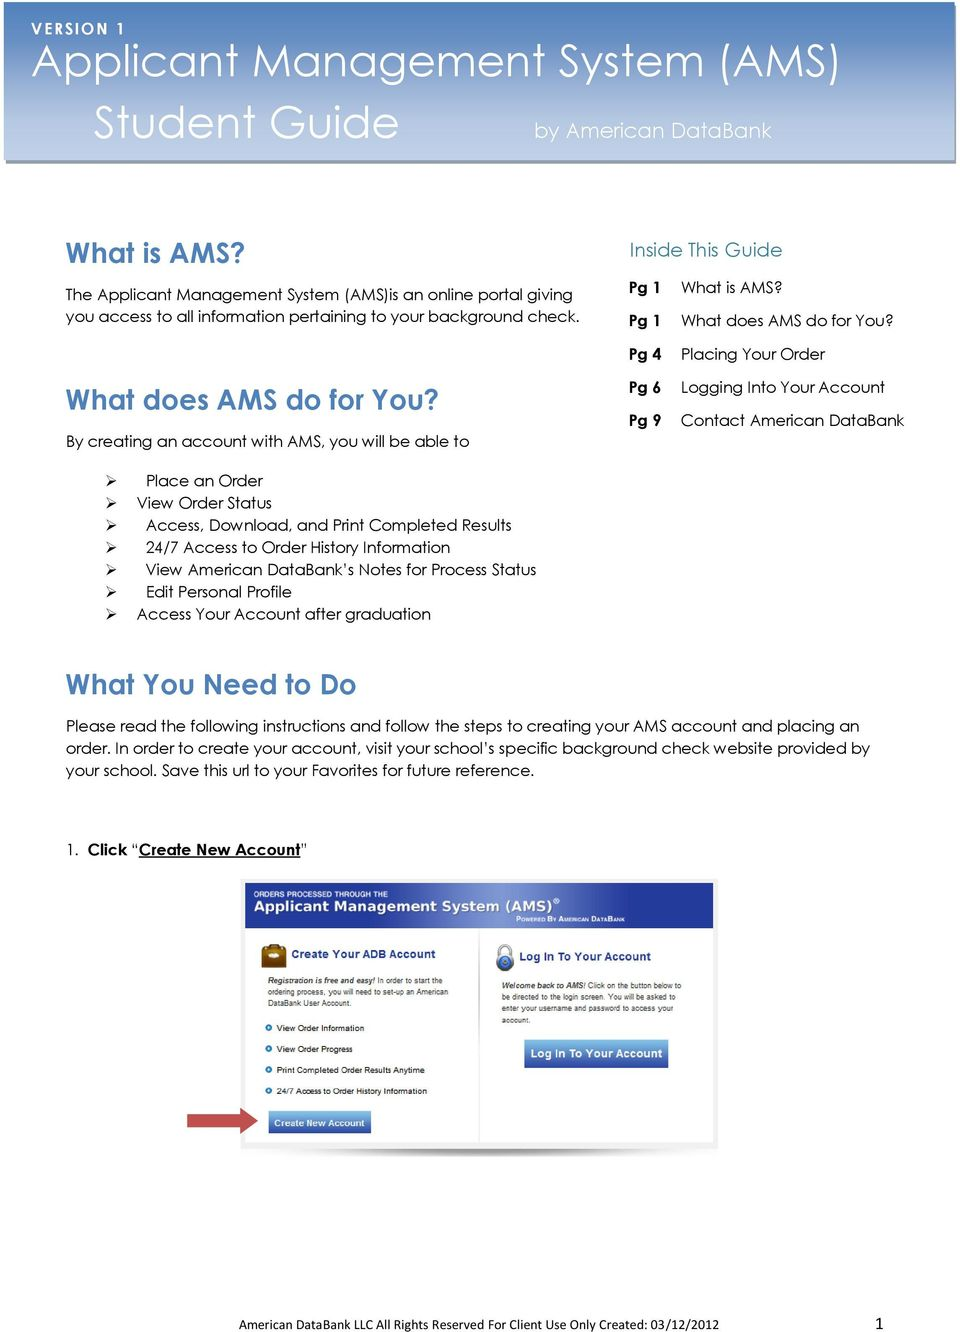 What does AMS do for You?